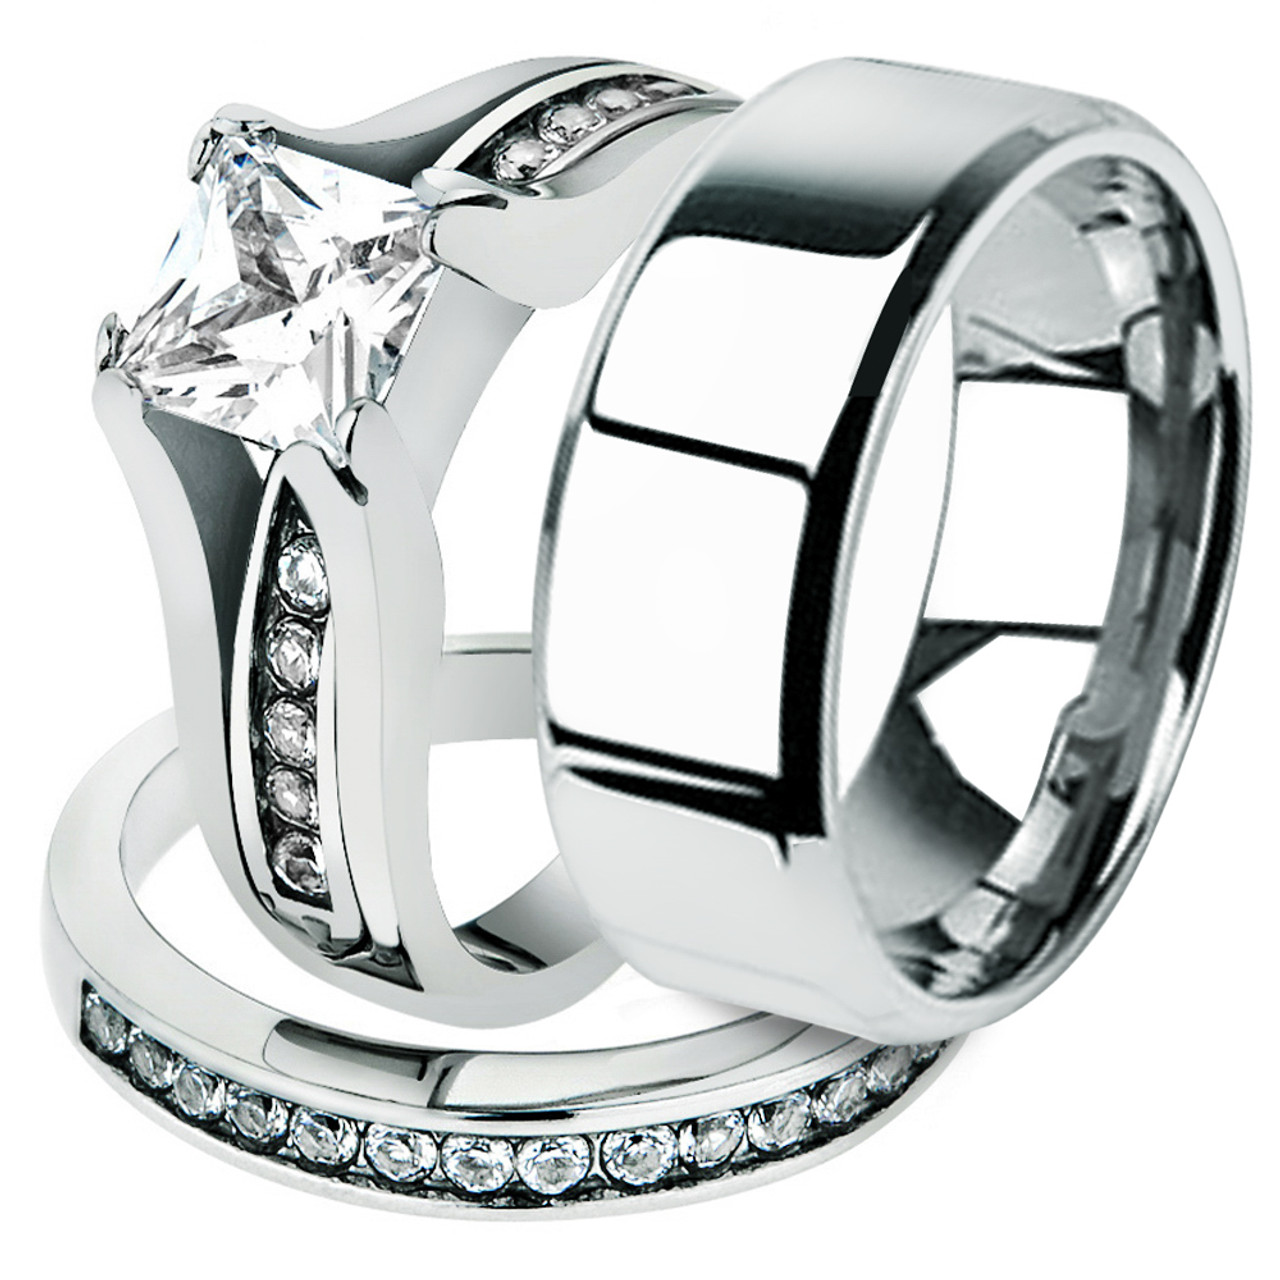 St0w383 Arm0006 His And Hers Stainless Steel Princess Wedding Ring